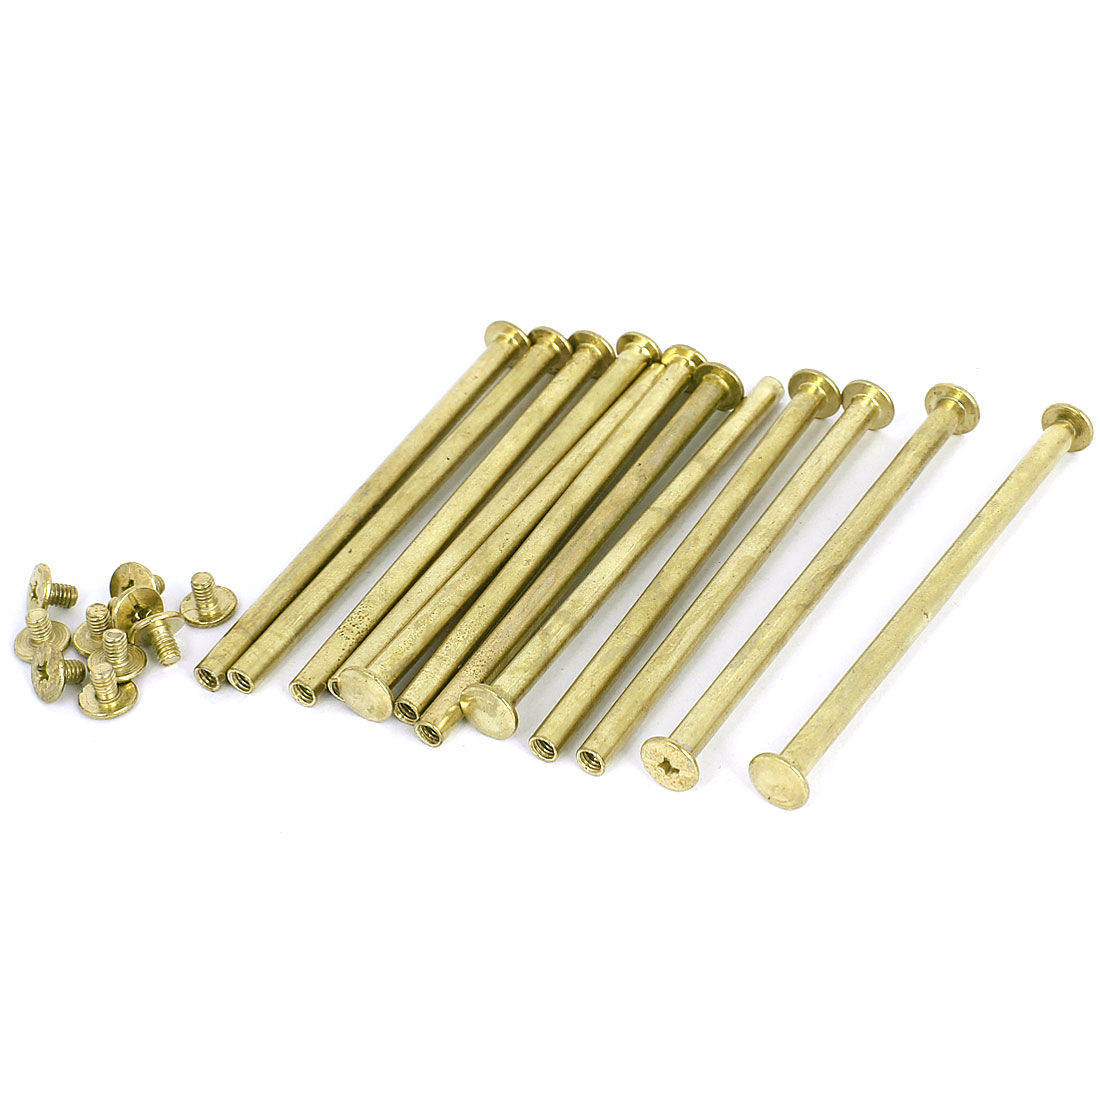 Brass Plated 5x90mm Binding Chicago Screw Post 12pcs for Leather Scrapbook